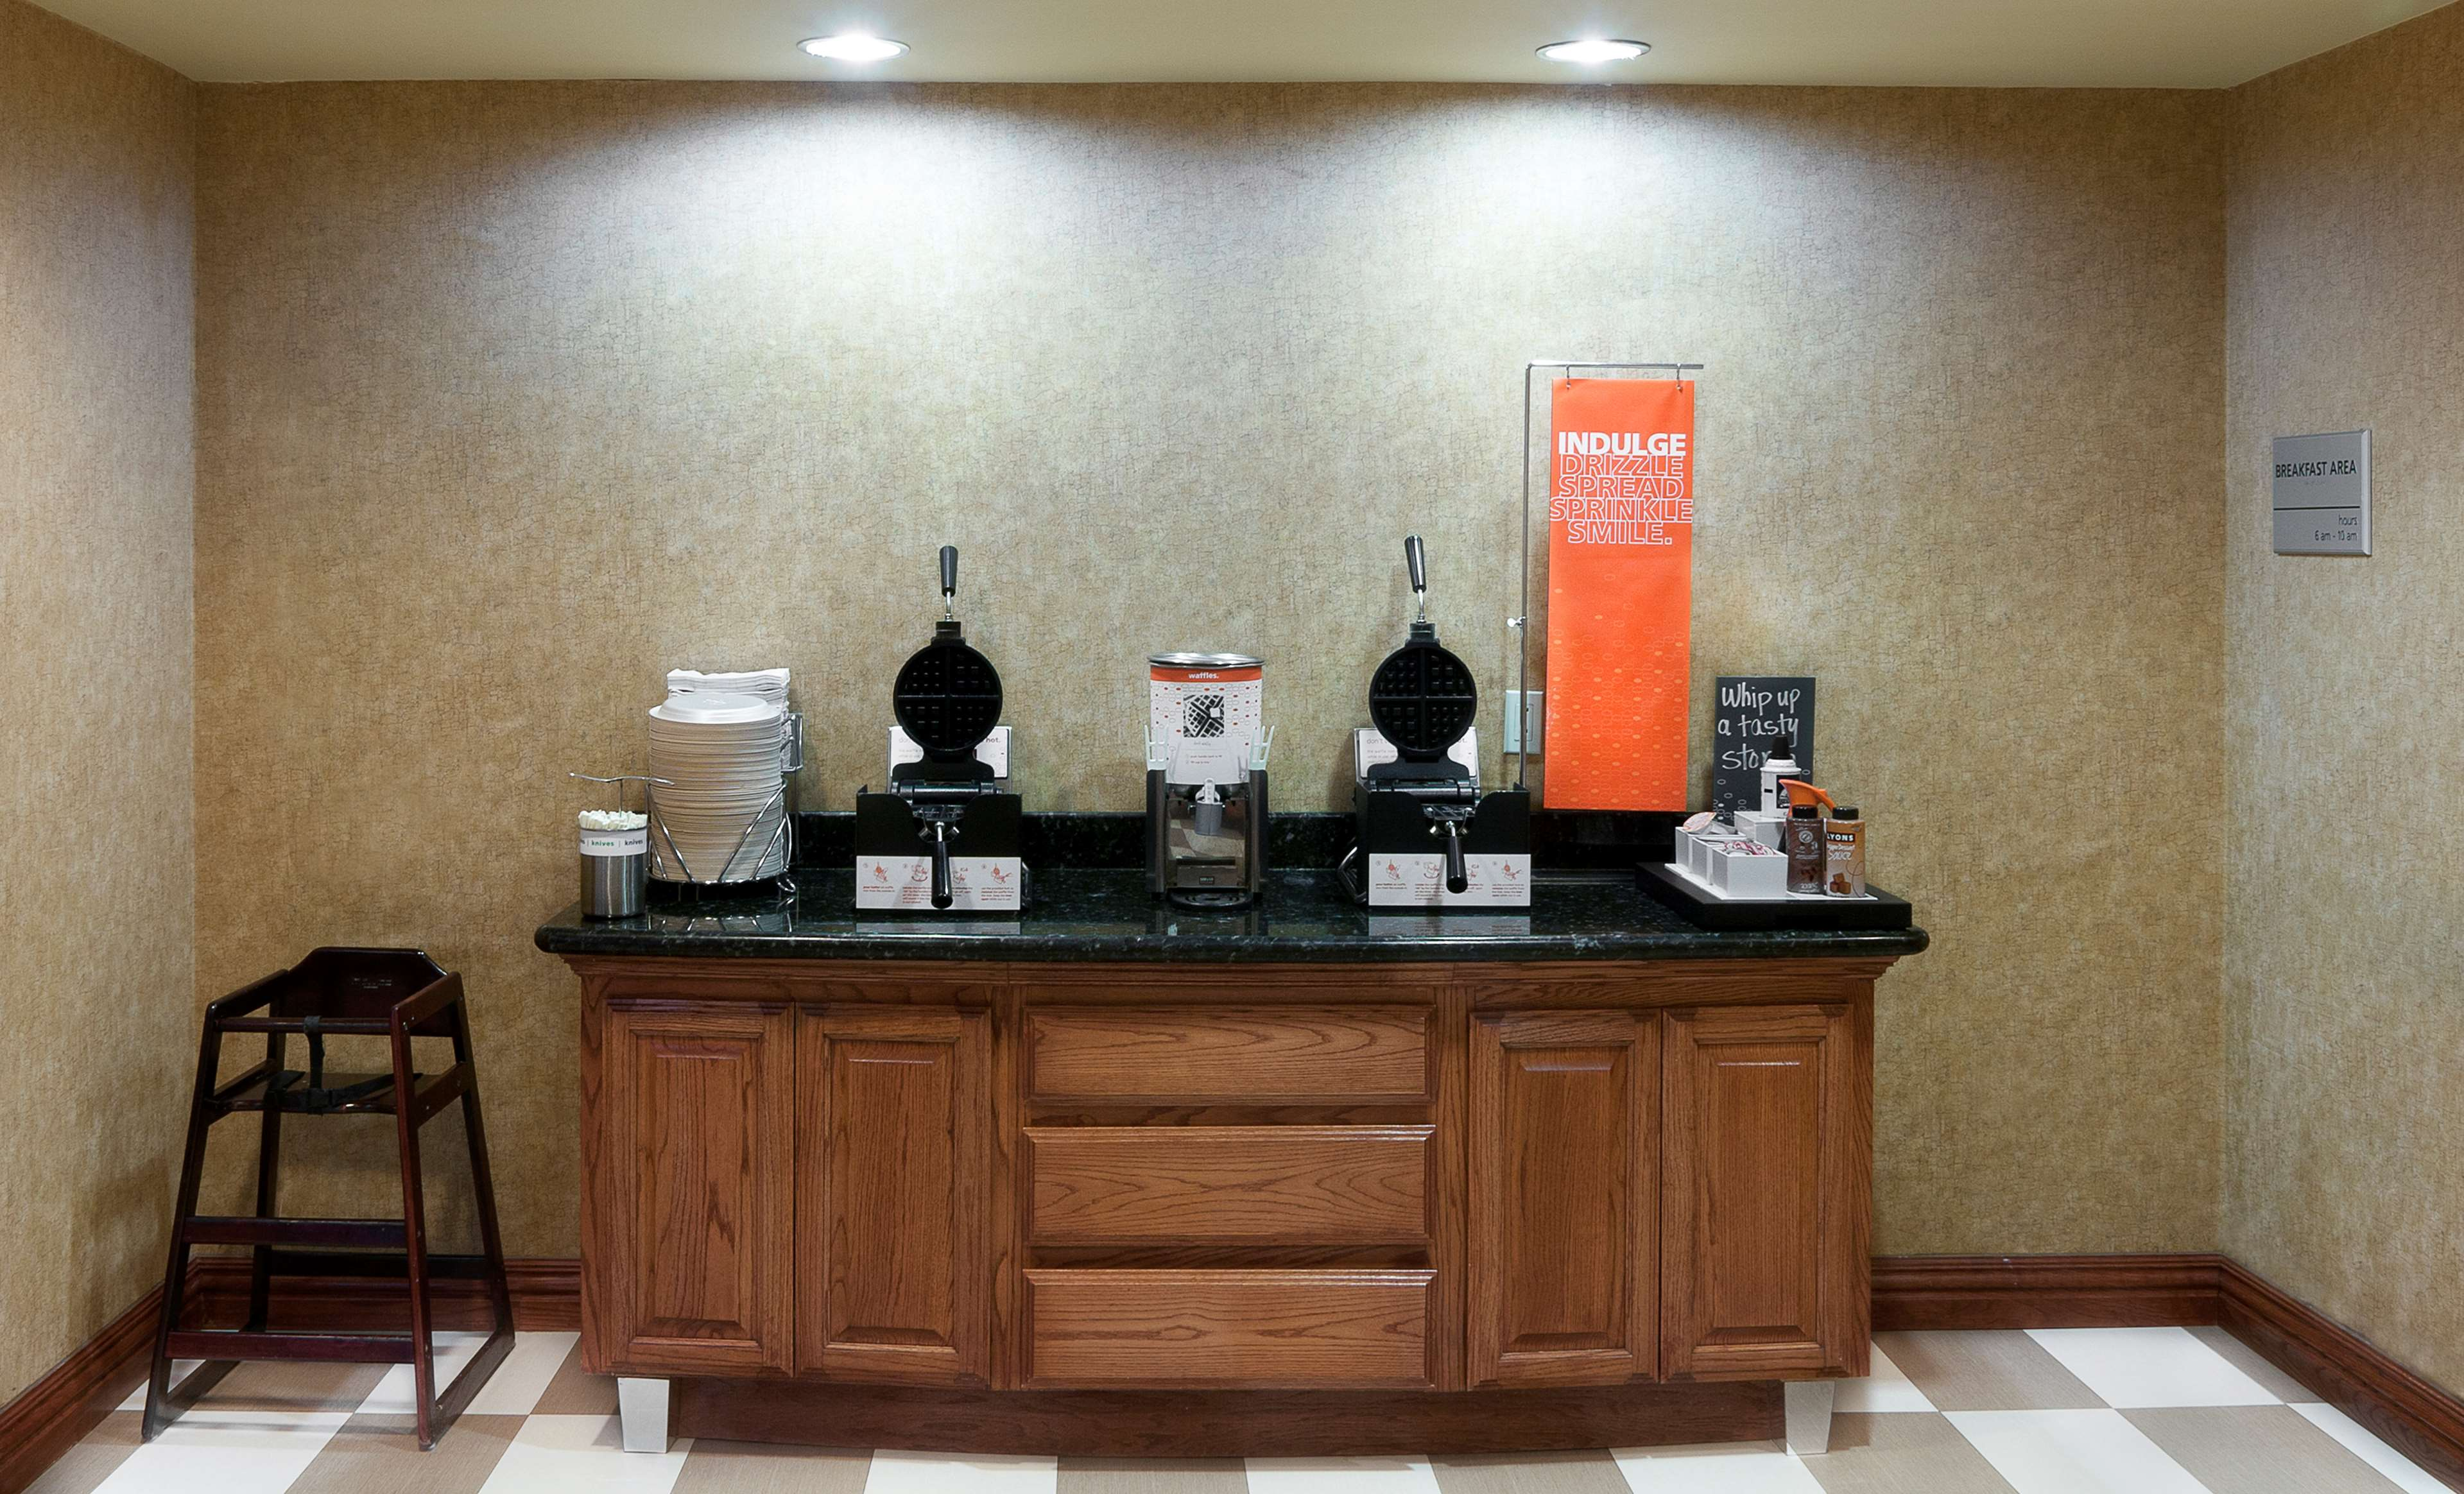 Hampton Inn and Suites Brownsville image 6